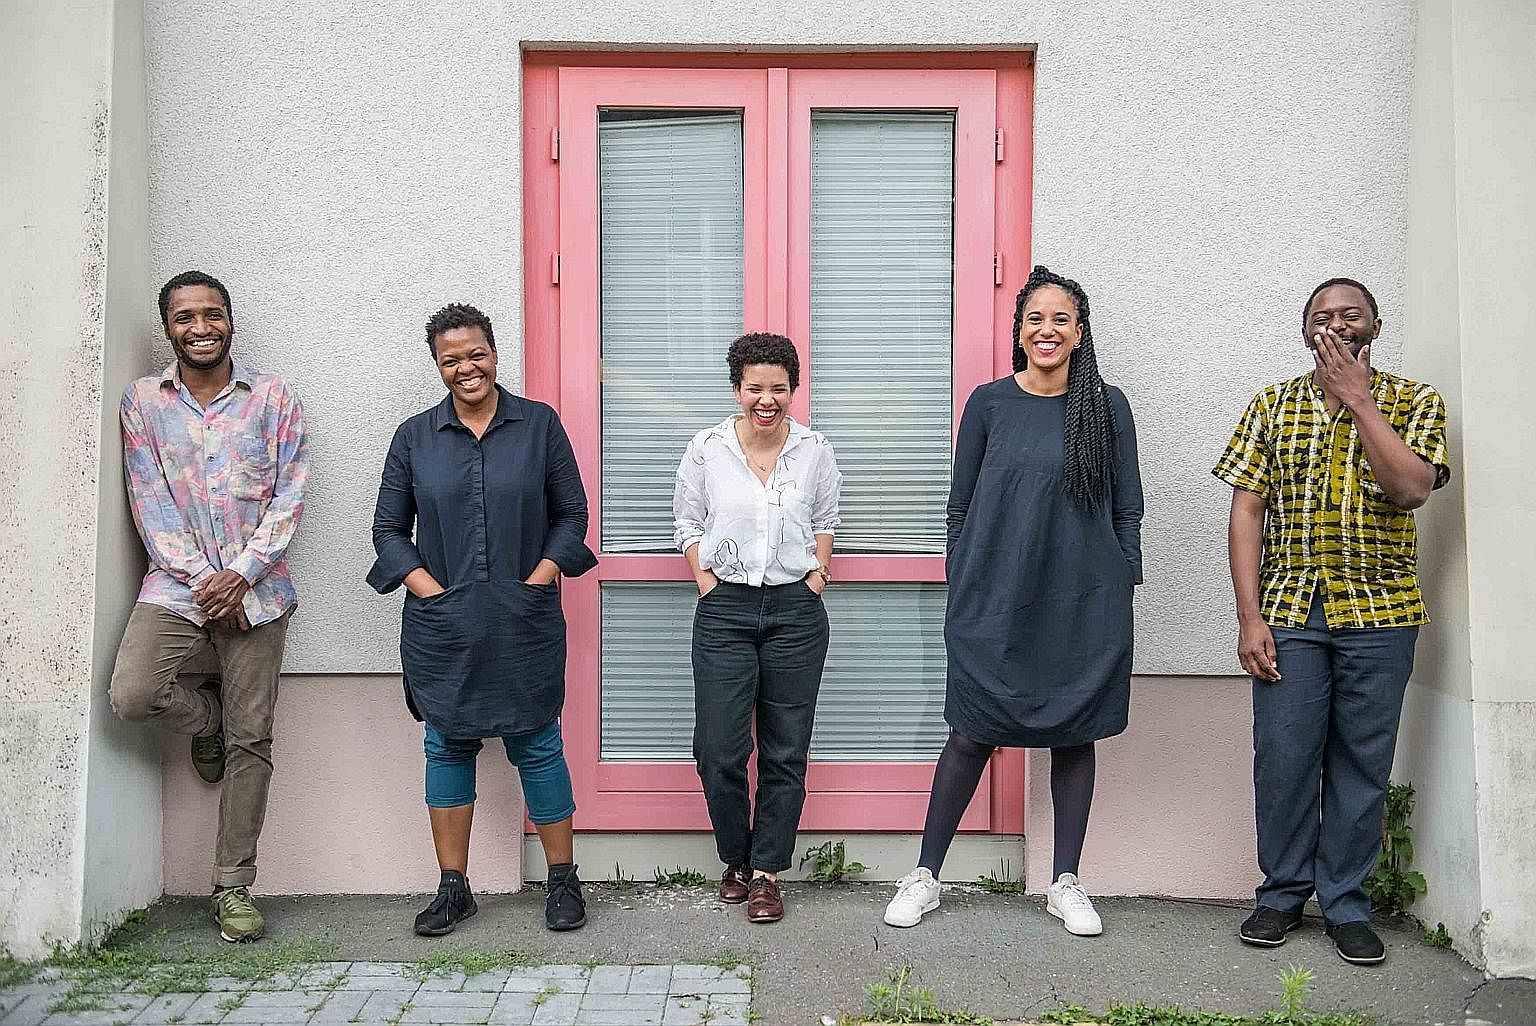 The curatorial team of the 10th Berlin Biennale for Contemporary Art (from far left) Thiago de Paula Souza, Gabi Ngcobo, Nomaduma Rosa Masilela, Yvette Mutumba and Moses Serubiri. The Shanghai Biennale will take place in the city's Power Station Of A